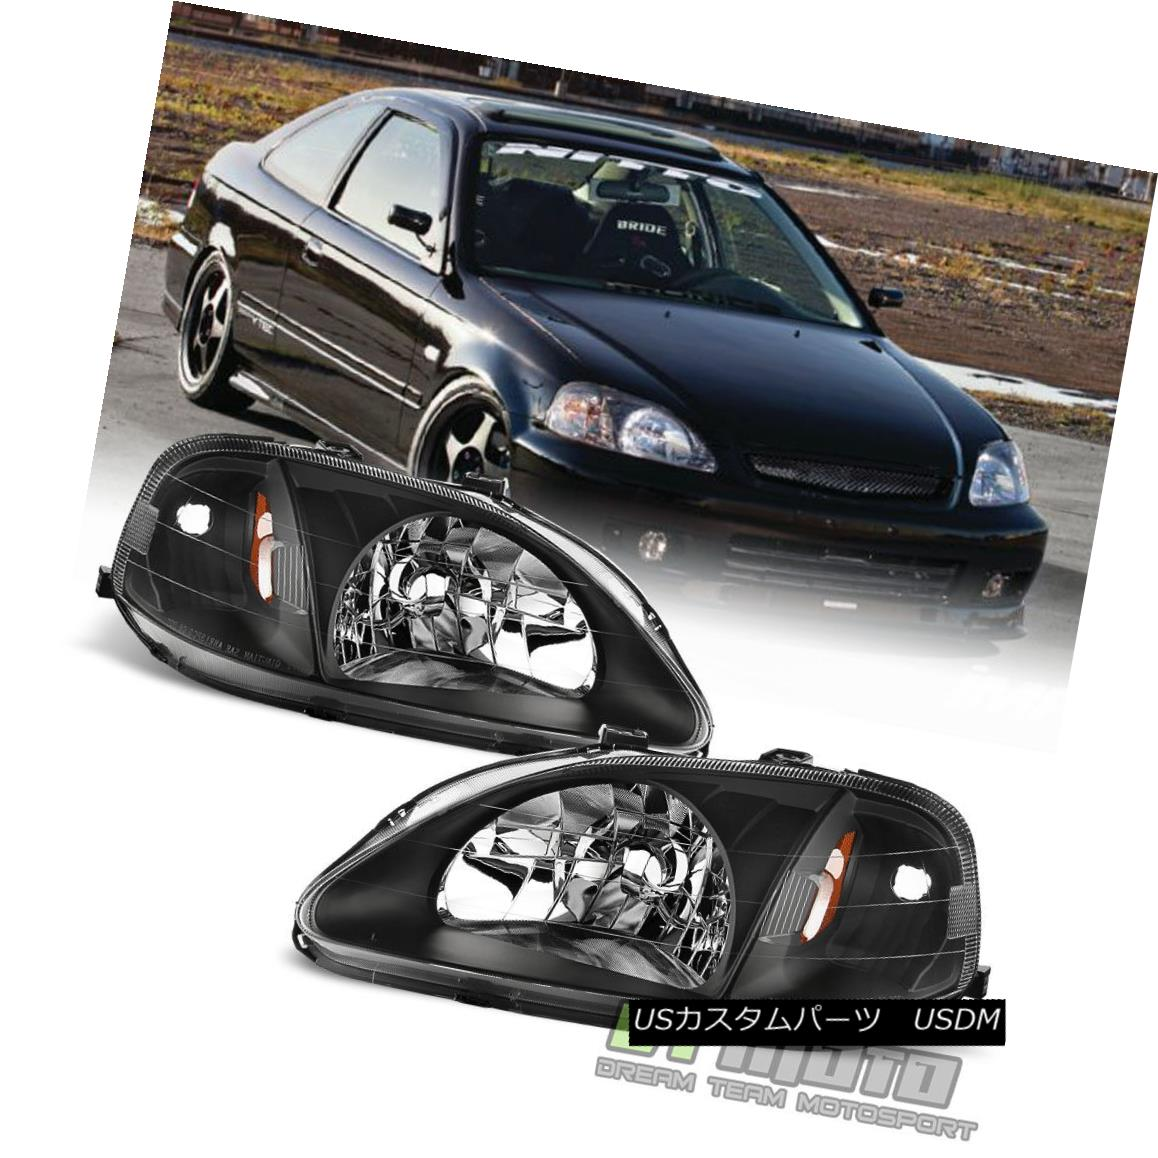 ヘッドライト For 1999-2000 Honda Civic 2/3/4Dr JDM Style Blk Headlights Headlamps Left+Right 1999-2000 Honda Civic 2/3 / 4Dr JDMスタイルBlkヘッドライトヘッドランプ左+右